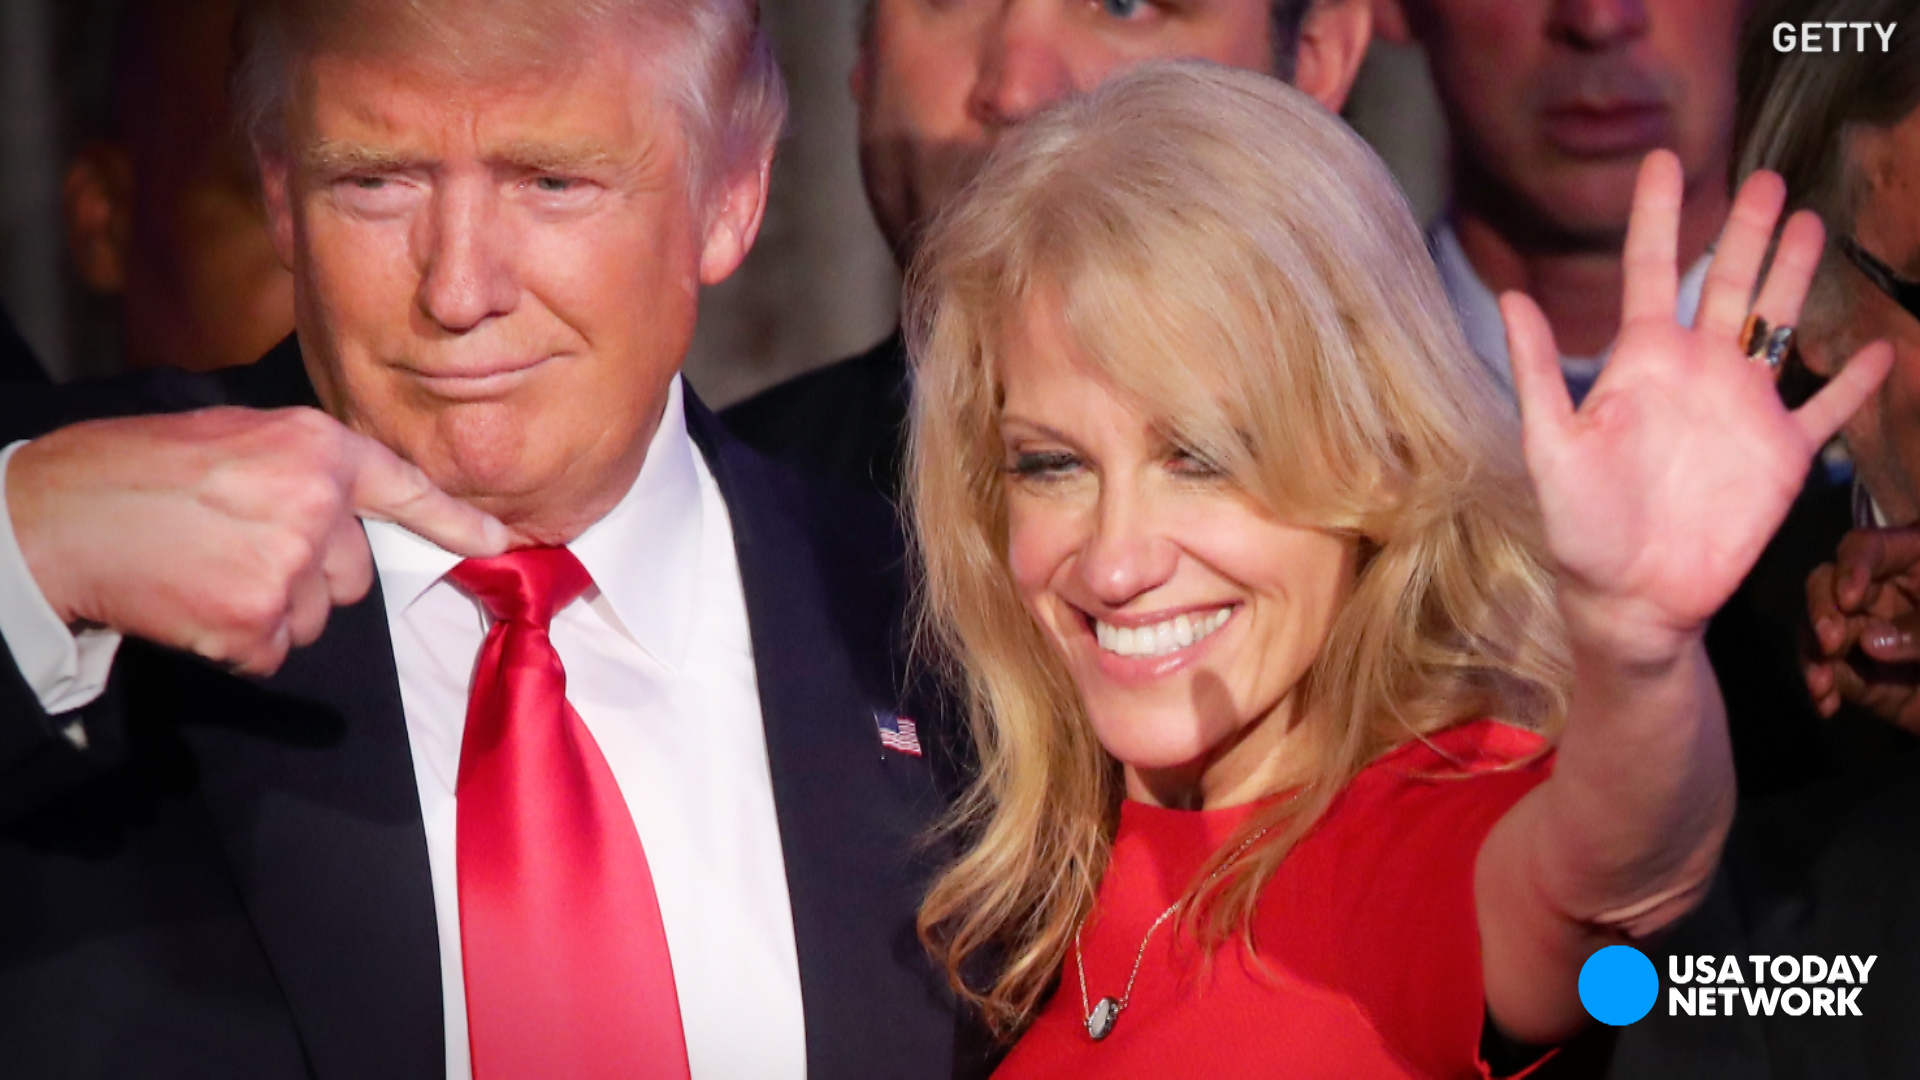 Kellyanne Conway: Trump's pick for White House counselor